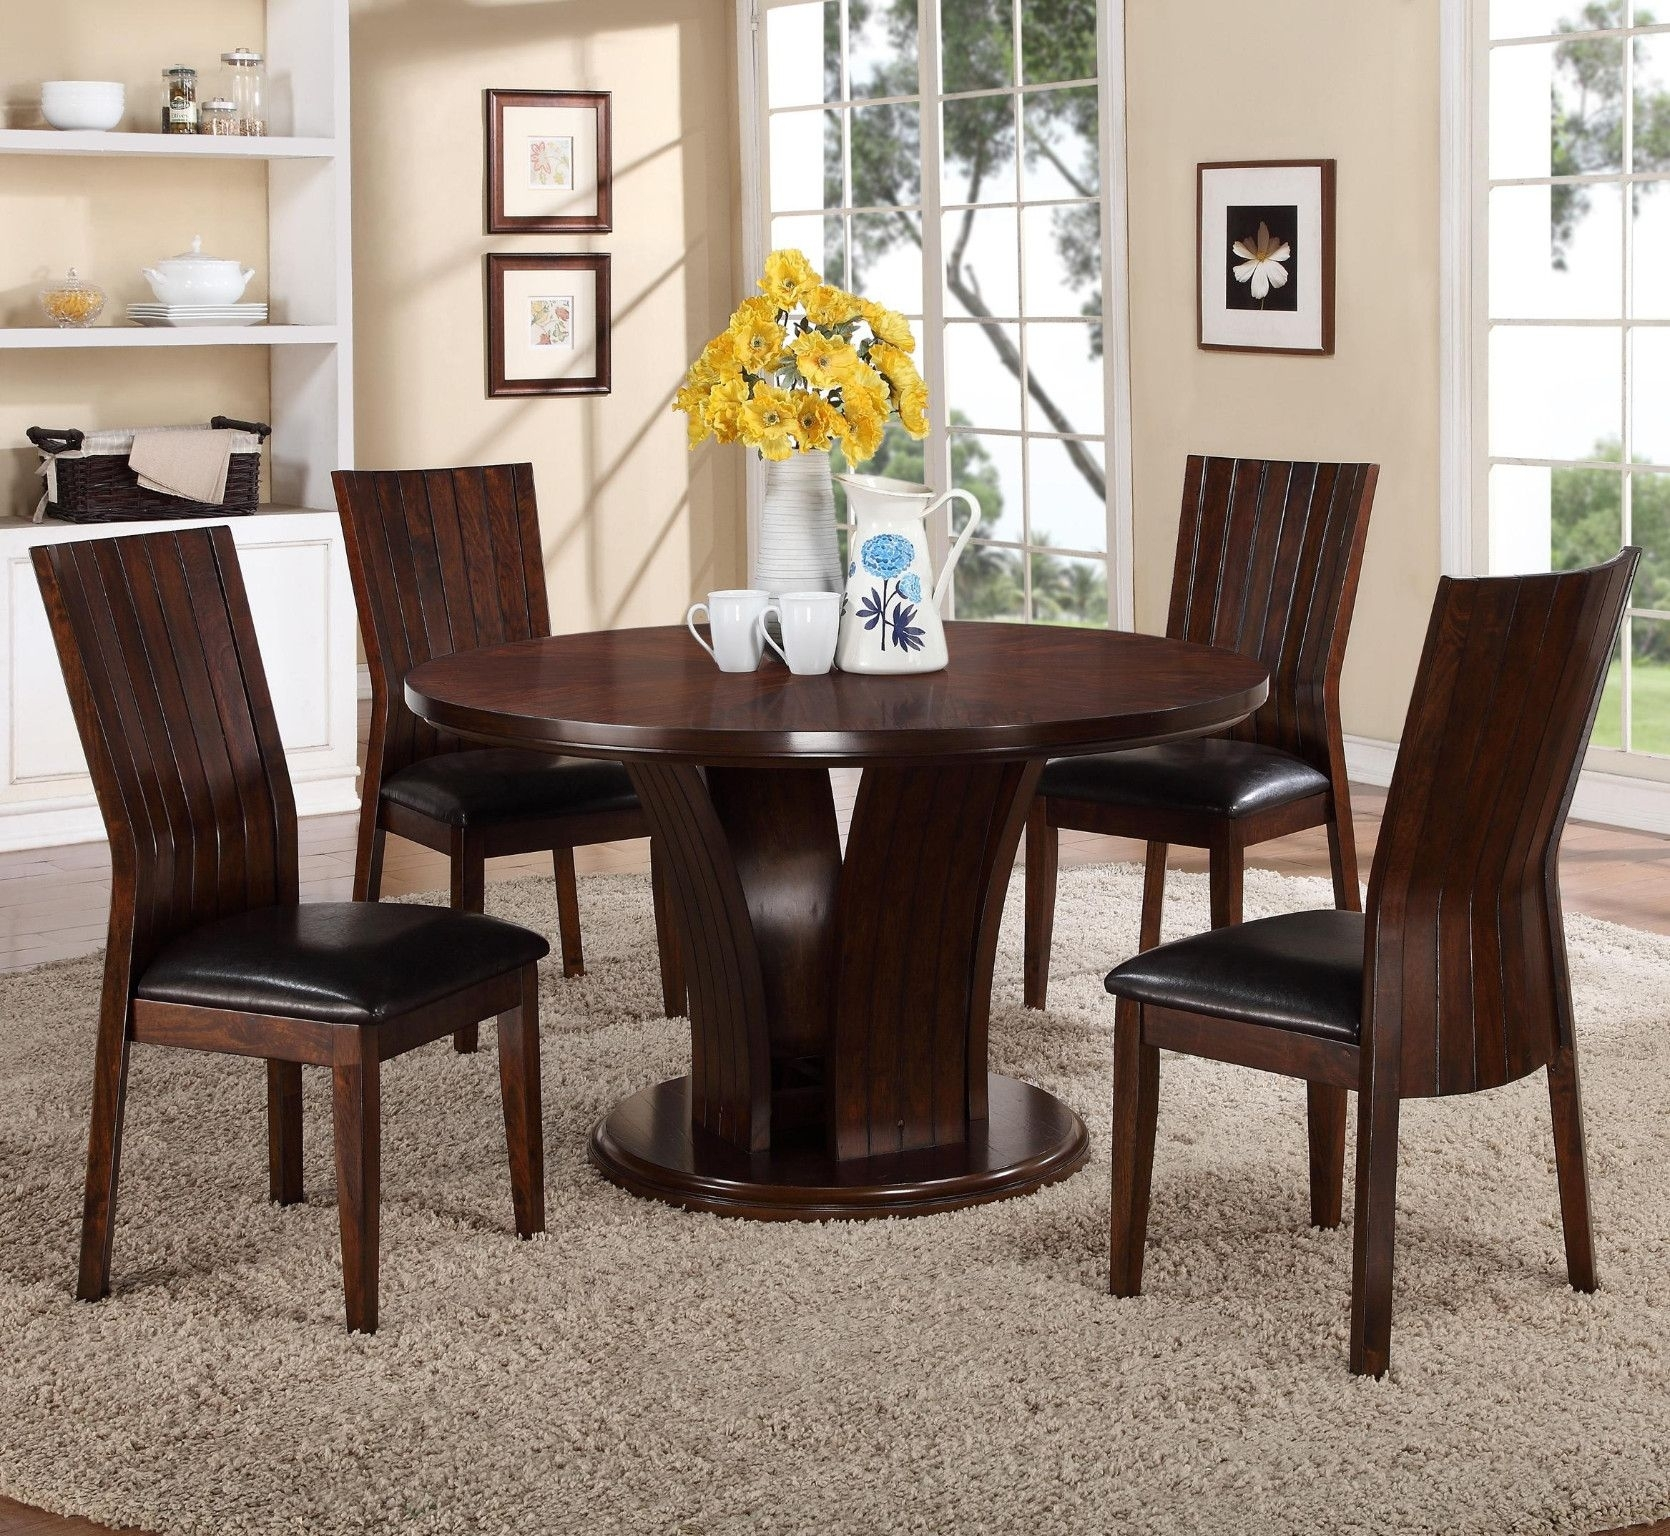 Daria Espresso 5 Piece Dining Set Starburst Veneer Top Table And 4 Regarding Newest Market 7 Piece Dining Sets With Host And Side Chairs (View 4 of 20)